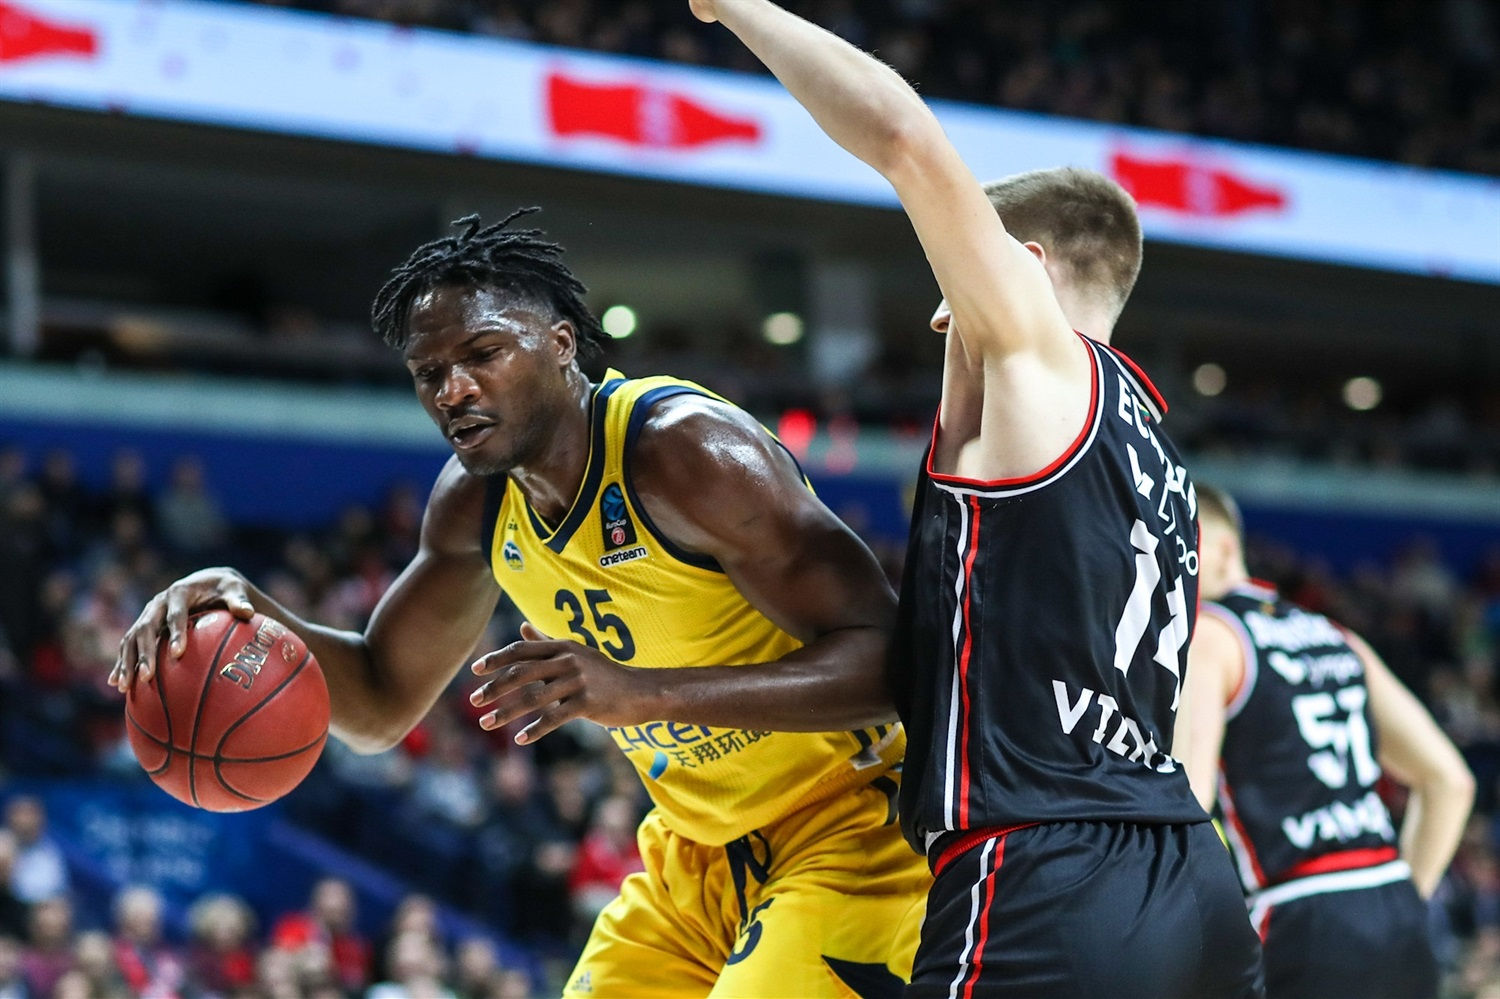 Landry Nnoko - ALBA Berlin (photo Rytas) - EC18